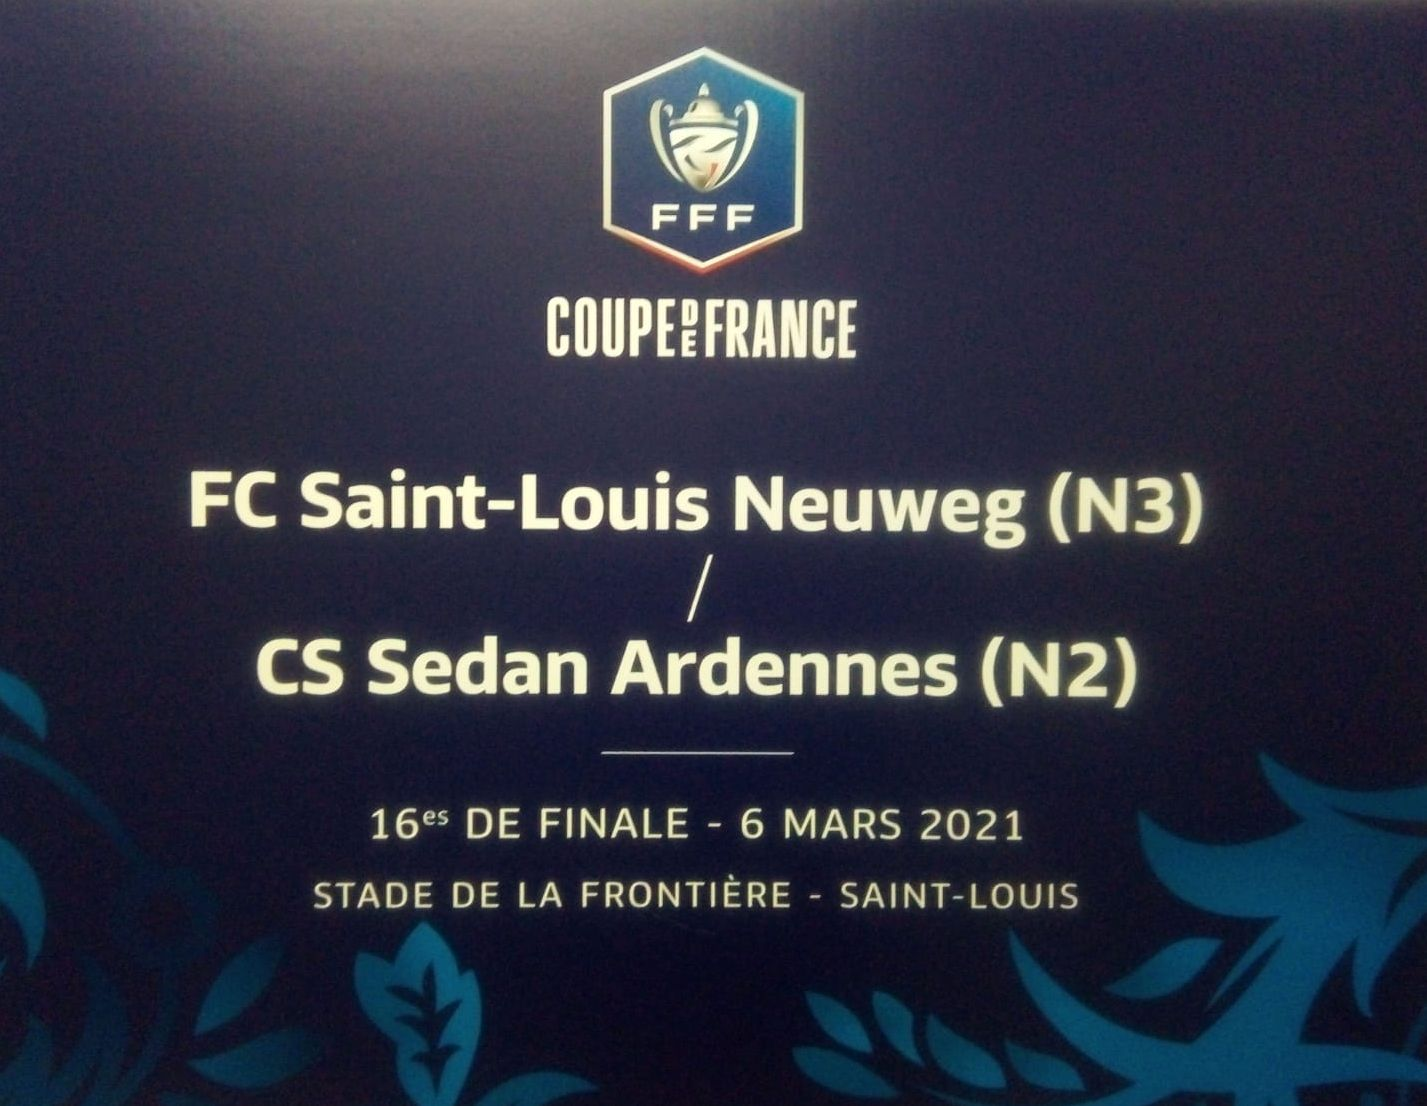 FC Saint-Louis Neuweg  football